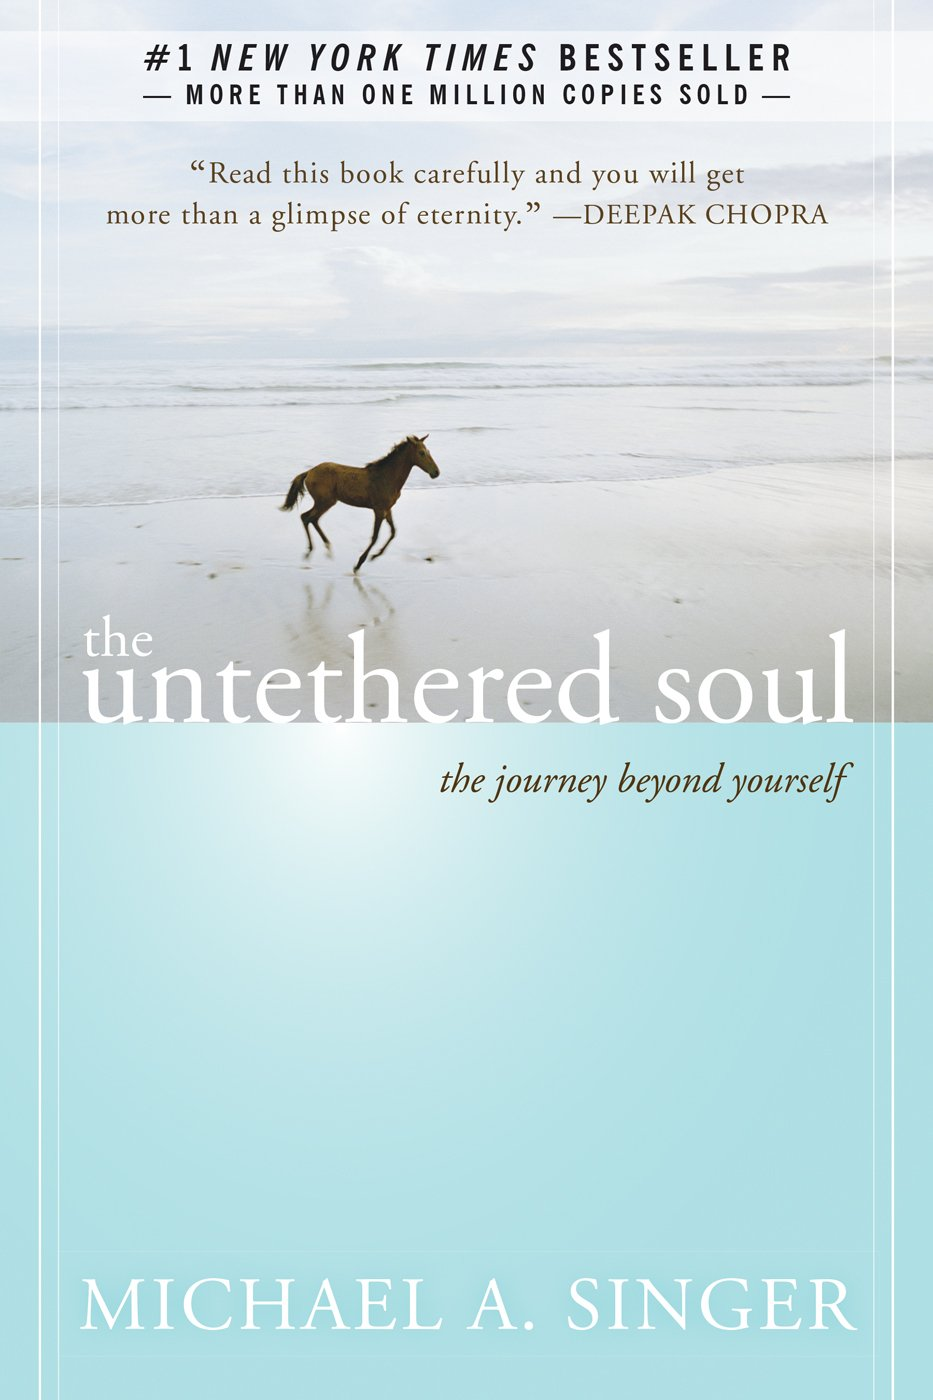 the-untethered-soul-the-journey-beyond-yourself-by-michael-a-singer